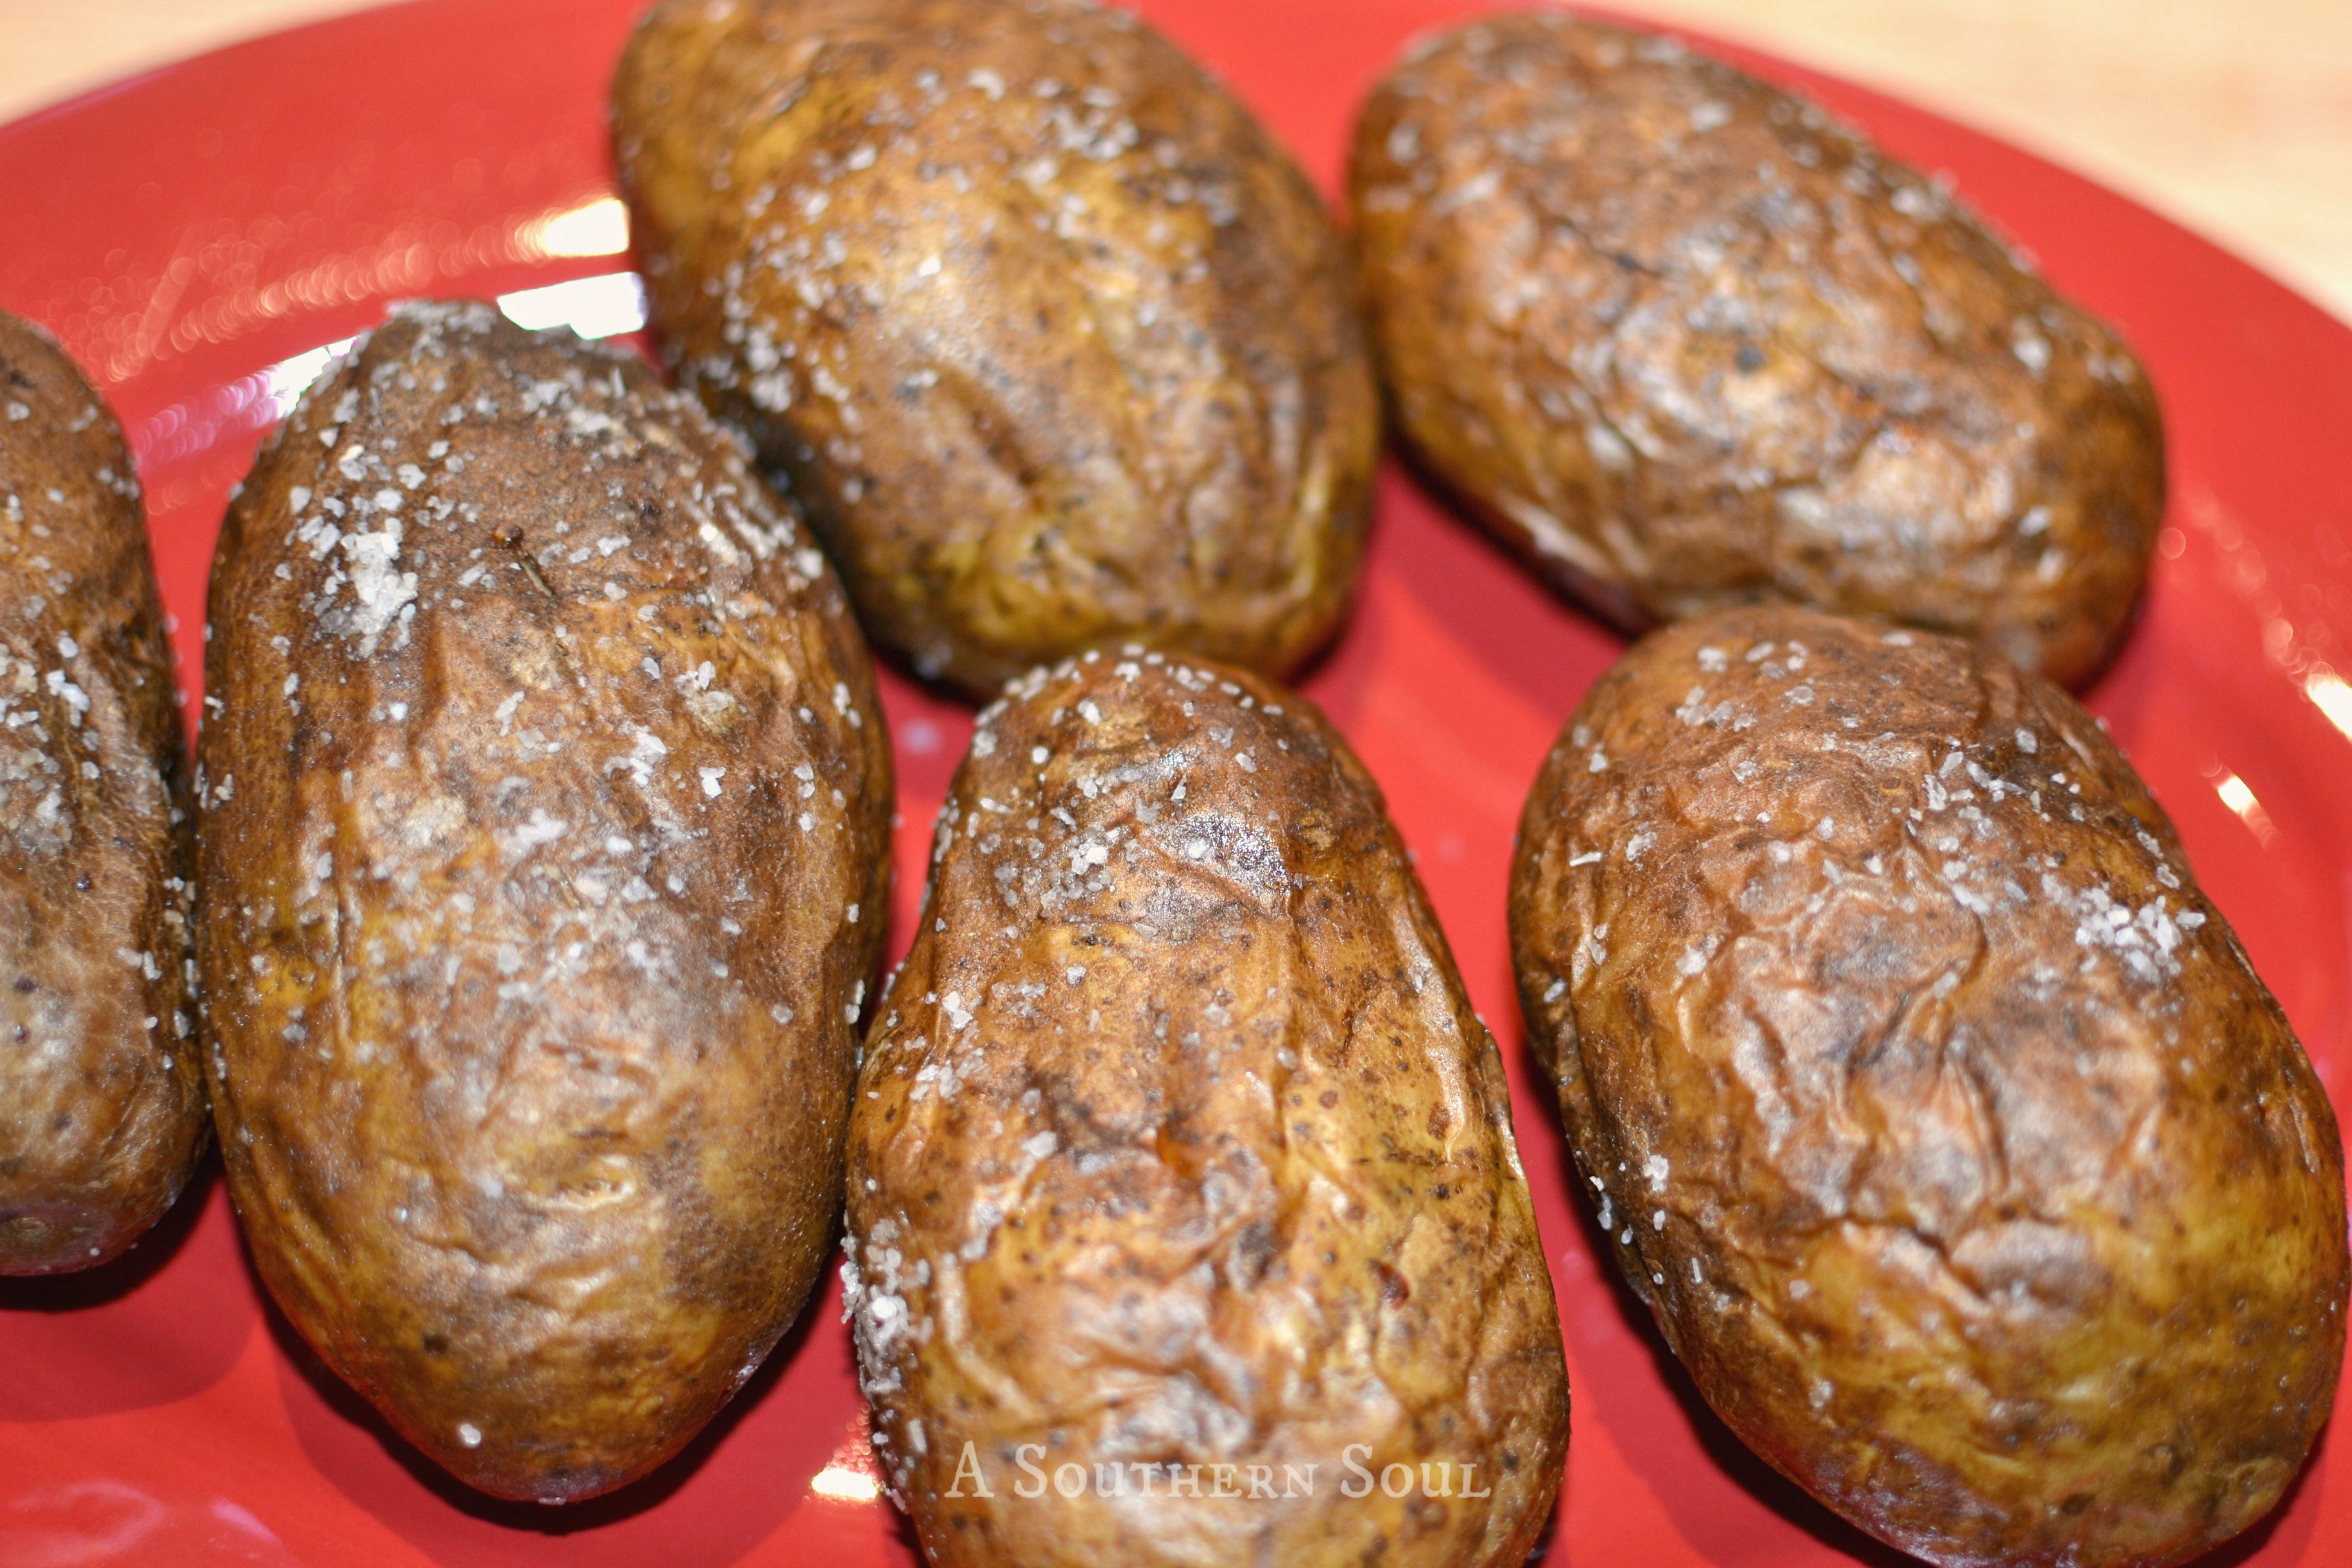 baked-potatoes-with-saltwm